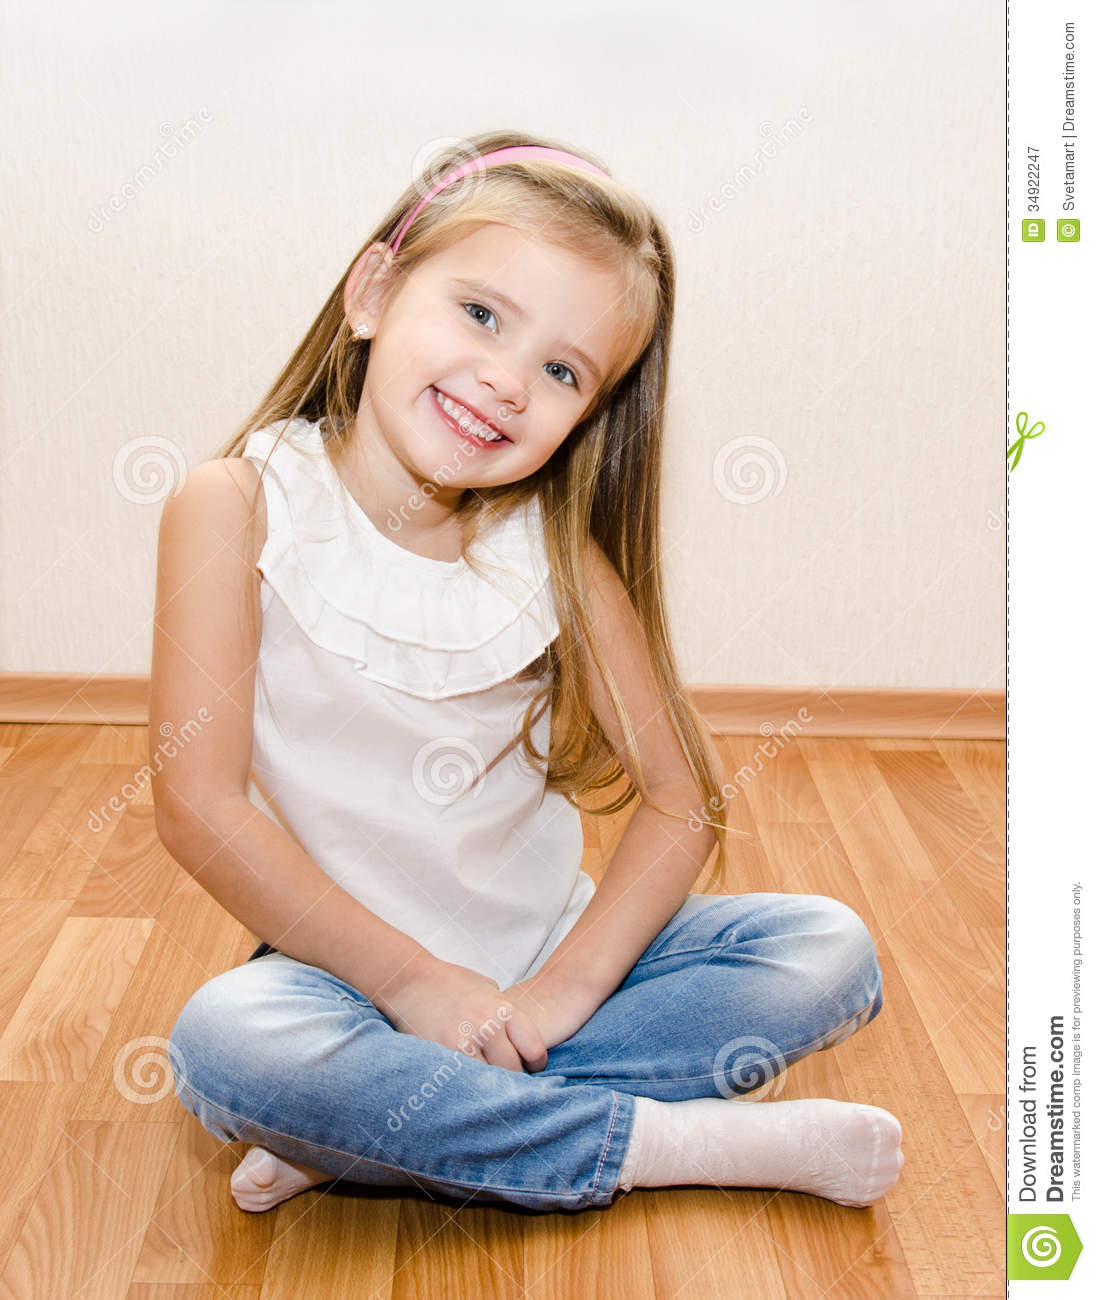 Royalty Free Stock Photography Smiling Cute Little Girl Sitting Floor House Image34922247 besides Detailed House Cutaway 3d Model as well Food Court Area Cork I T as well 2d Grundrisse Planen further . on 3d house floor plans